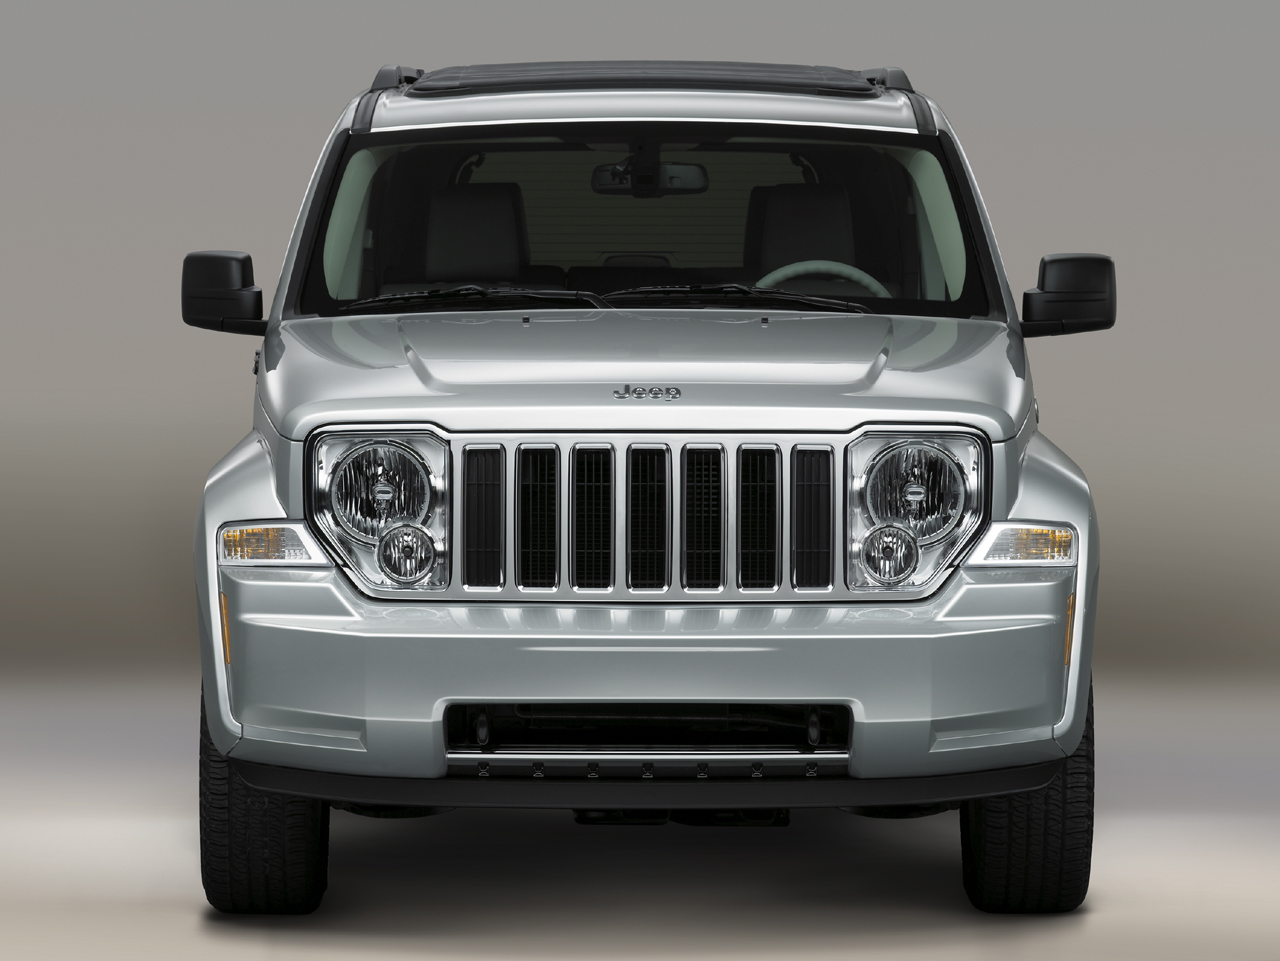 Head-on view of the 2008 Jeep Liberty